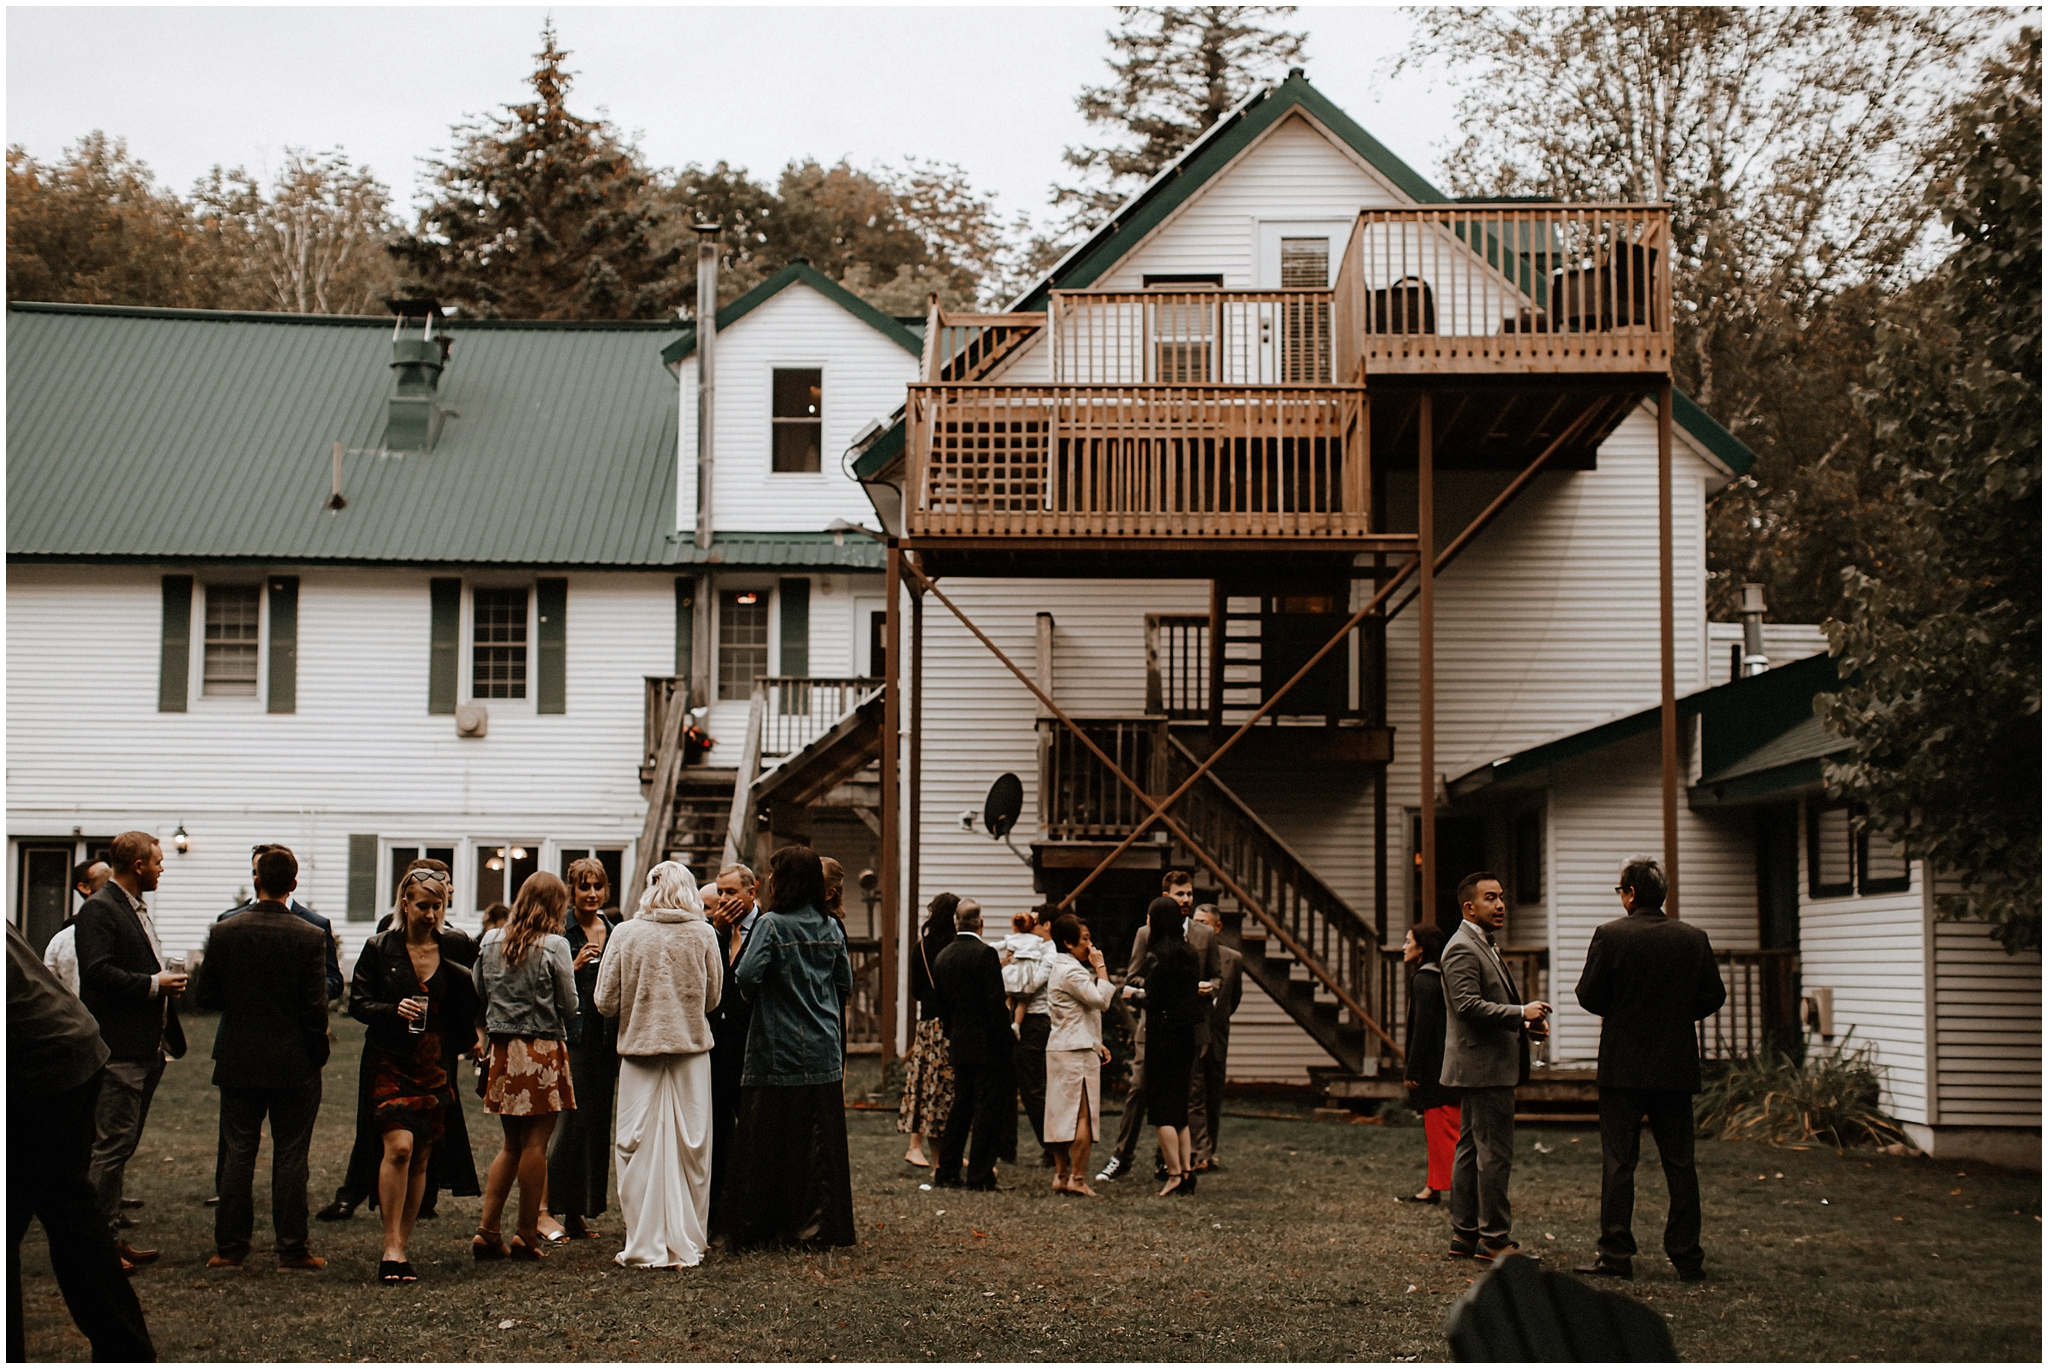 portage inn muskoka huntsville wedding photography bows and lavender cottage wedding inspiration